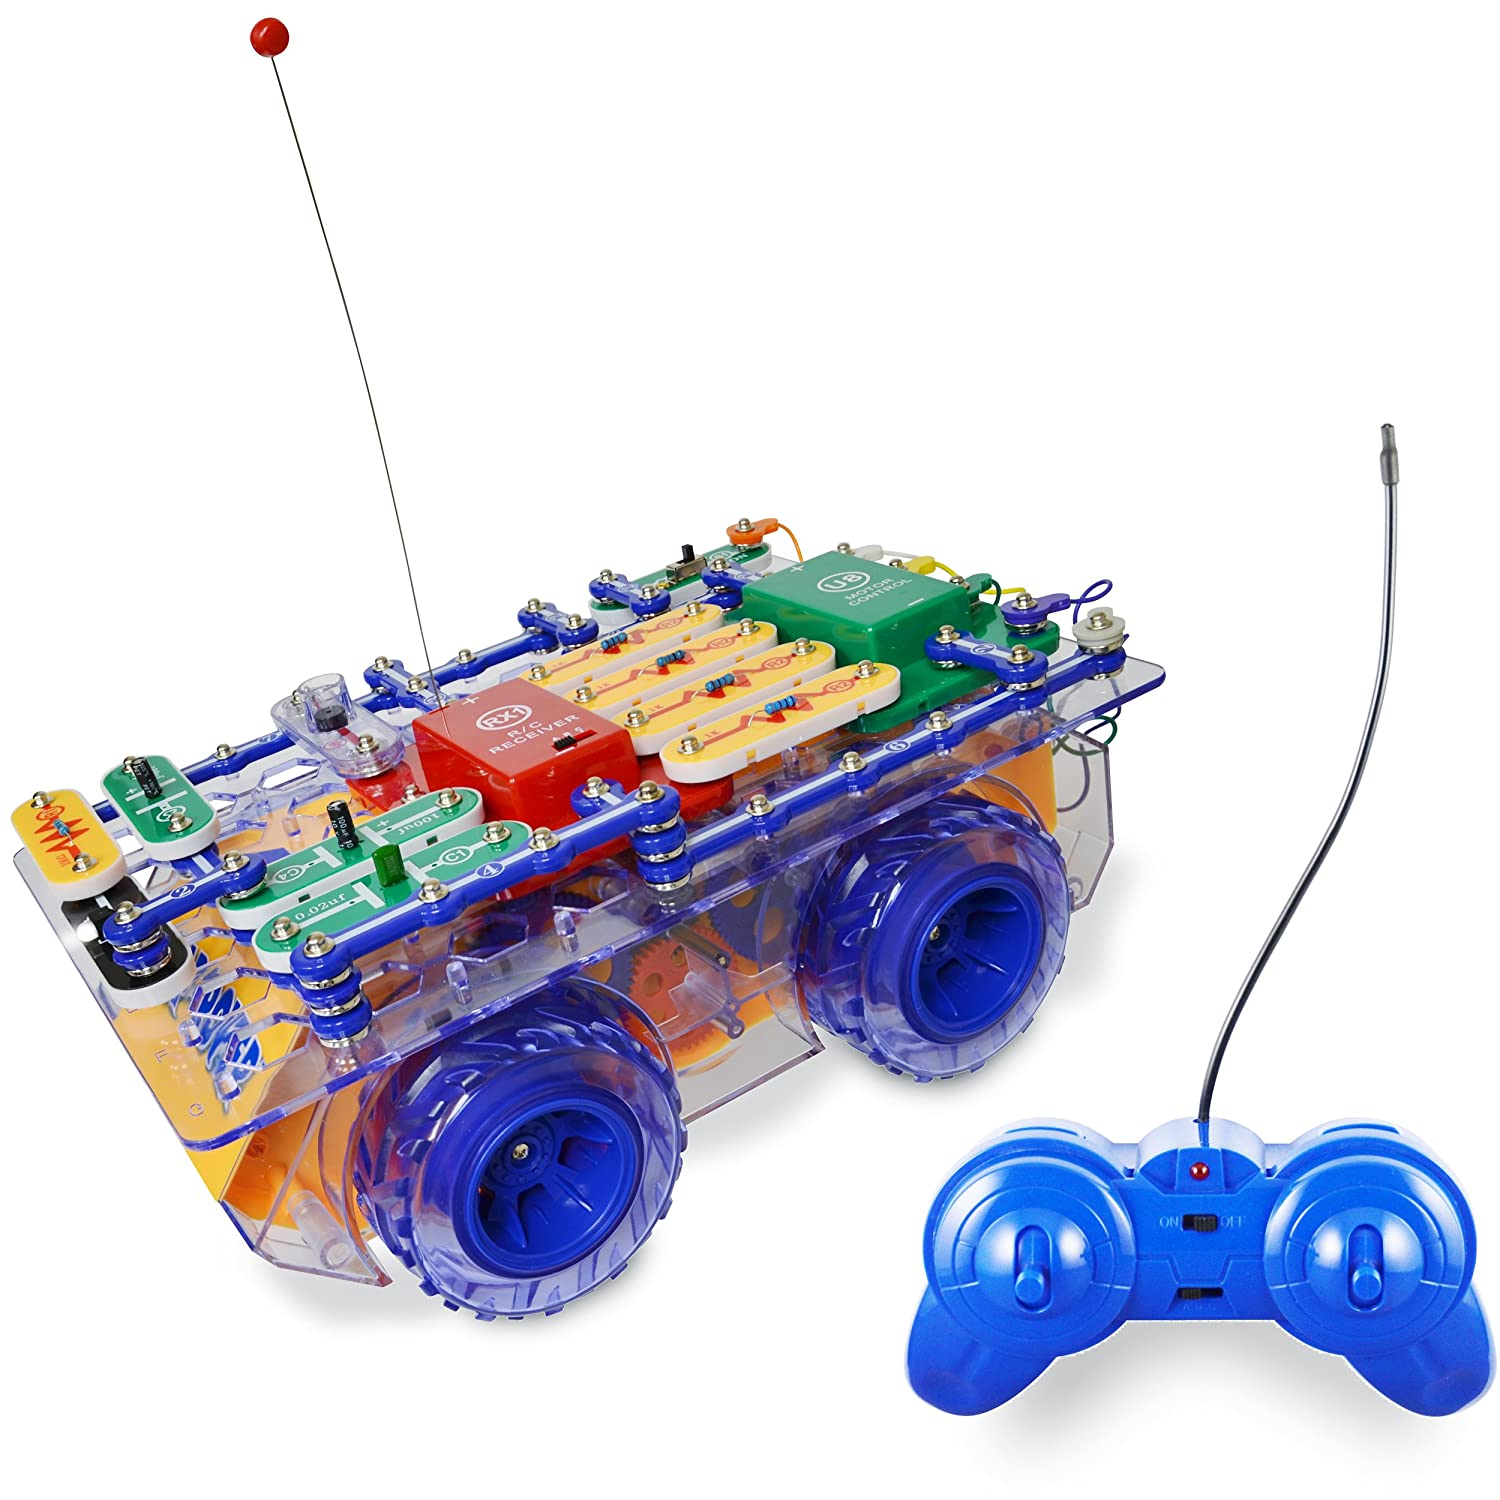 Snap Circuits R C Rover Electronics Exploration Kit Electronic Pro Handson Curriculum 23 Fun Stem Projects 4 Color Project Manual 30 Modules Unlimited